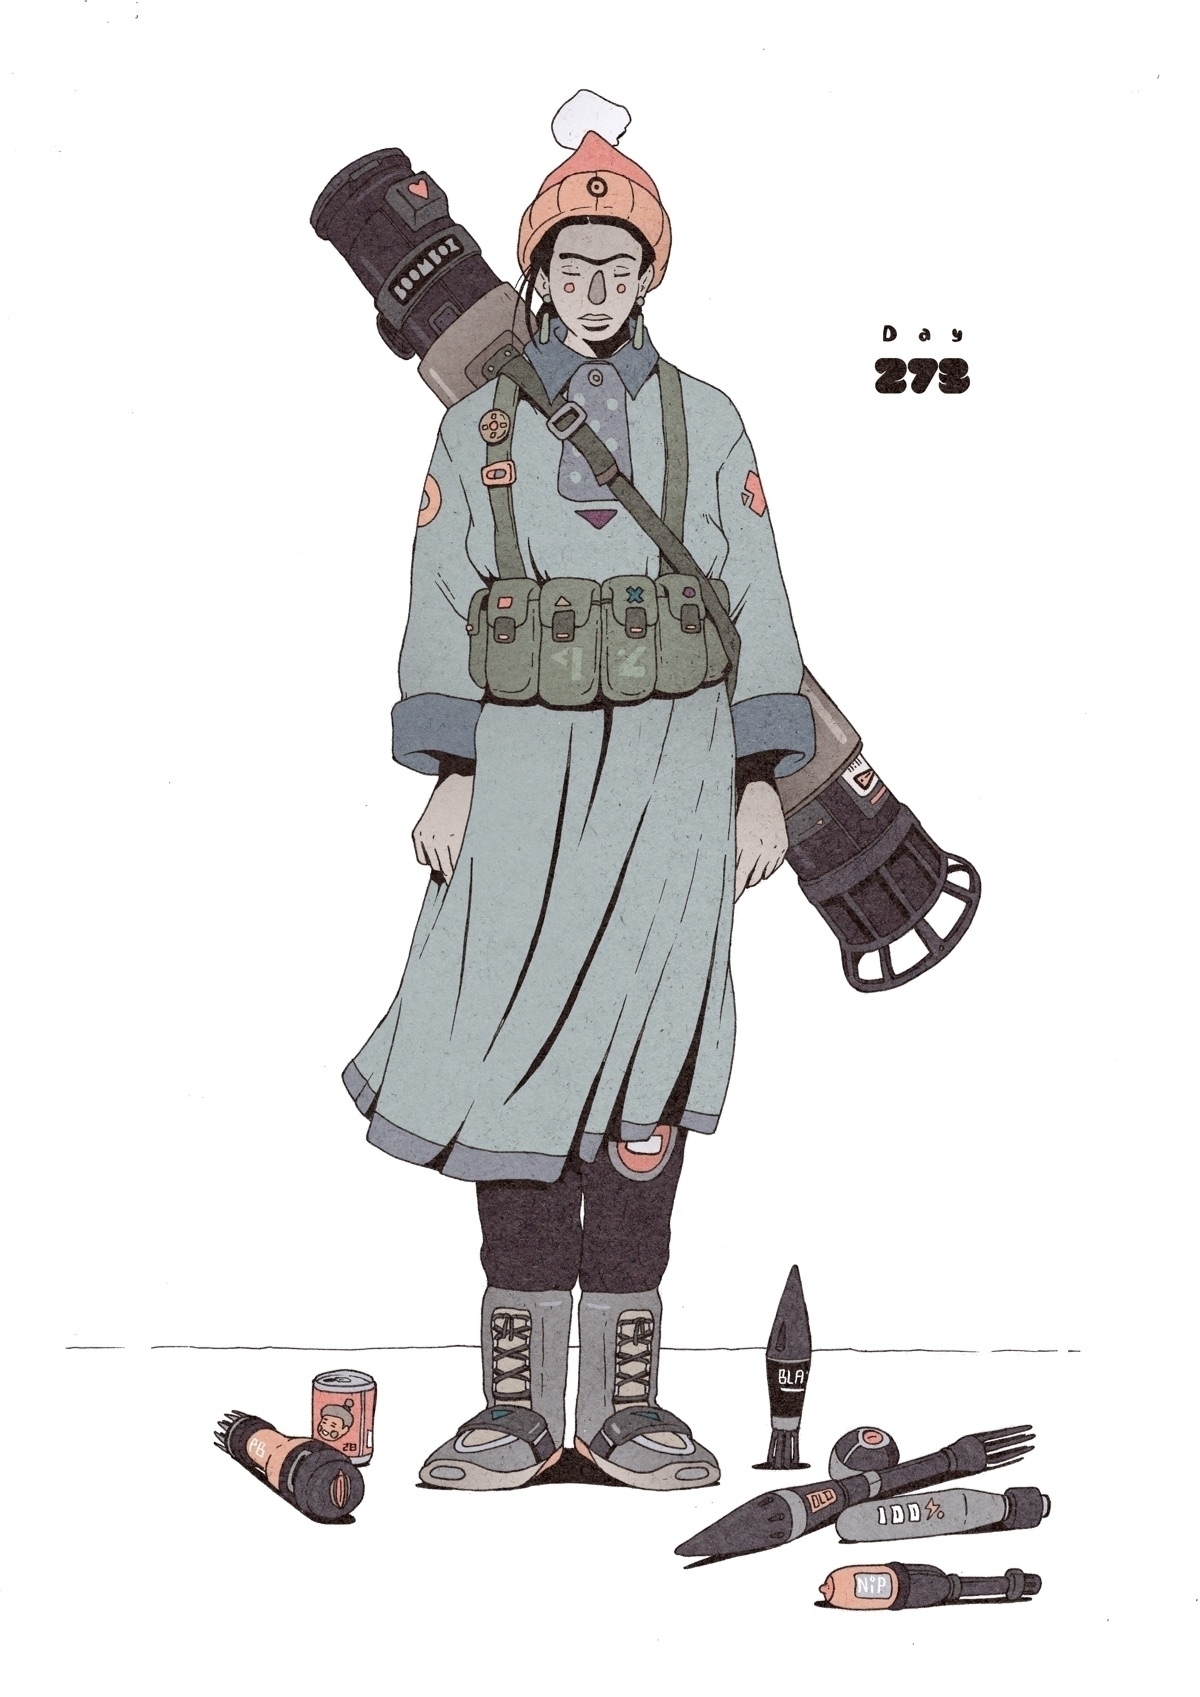 Day 273/365: Boombox Bazooka - illustration - 1sles | ello